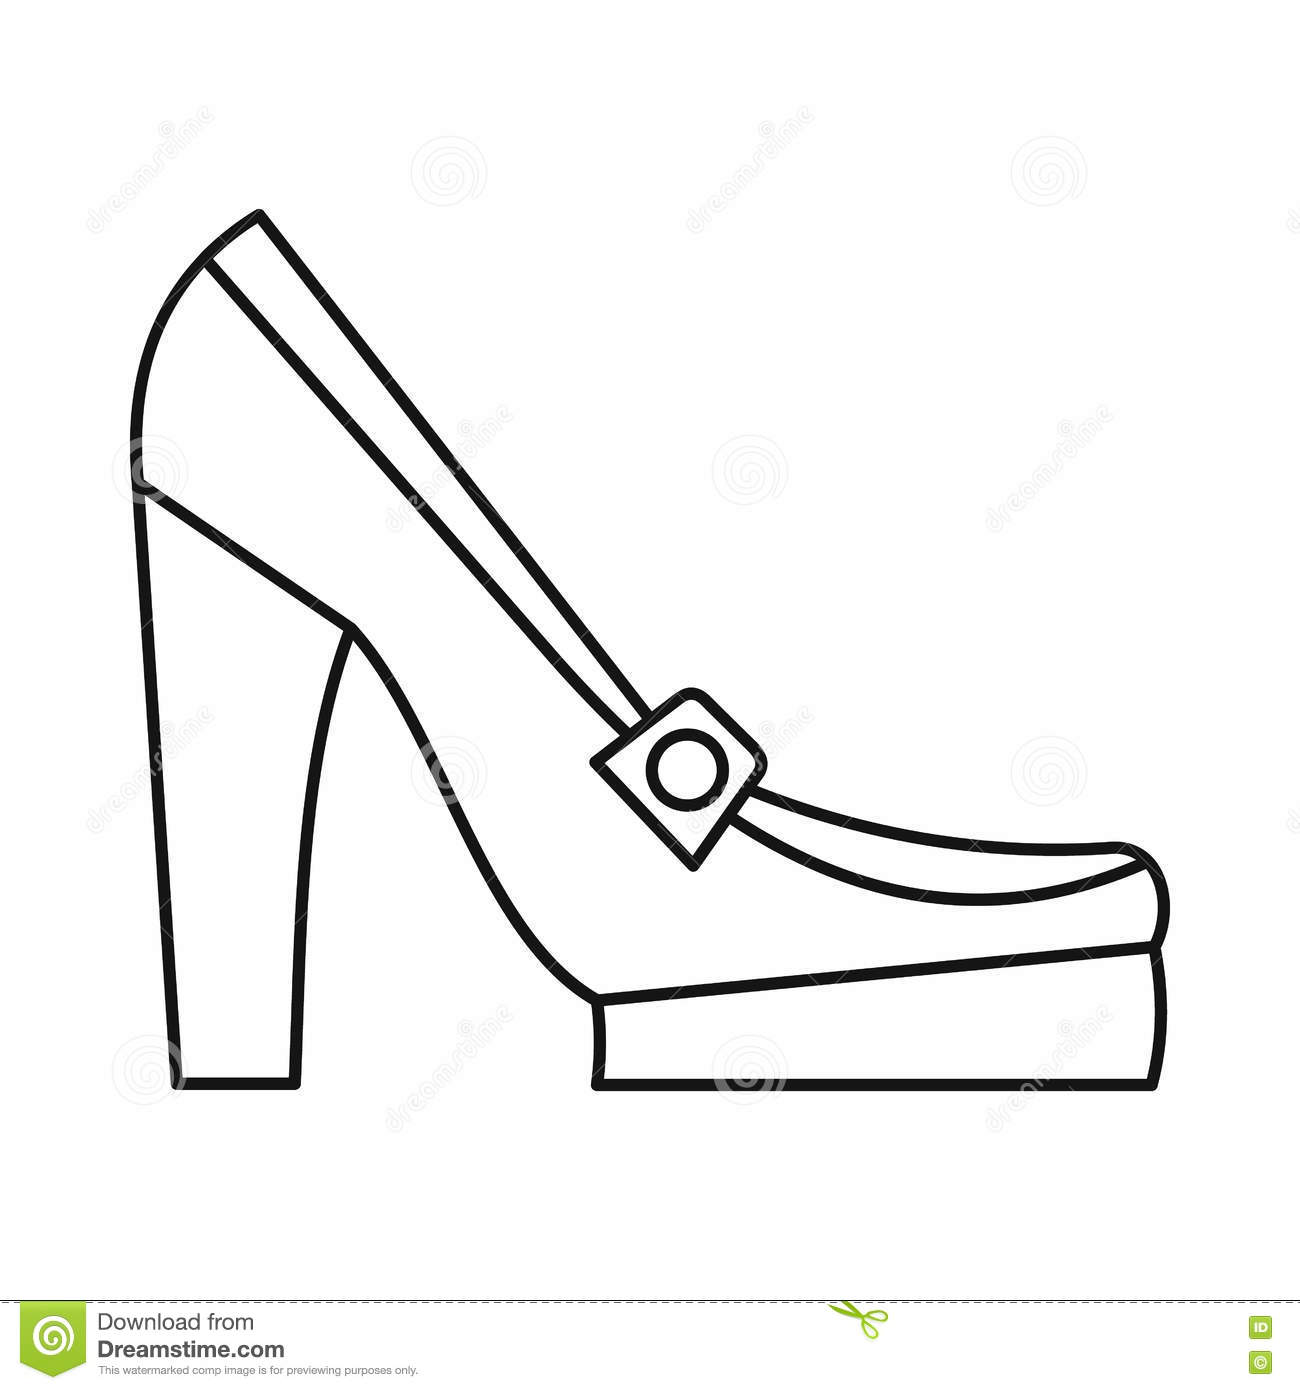 a25853aee09e Women shoes on platform icon in outline style isolated on white background.  Wear symbol vector illustration. More similar stock illustrations